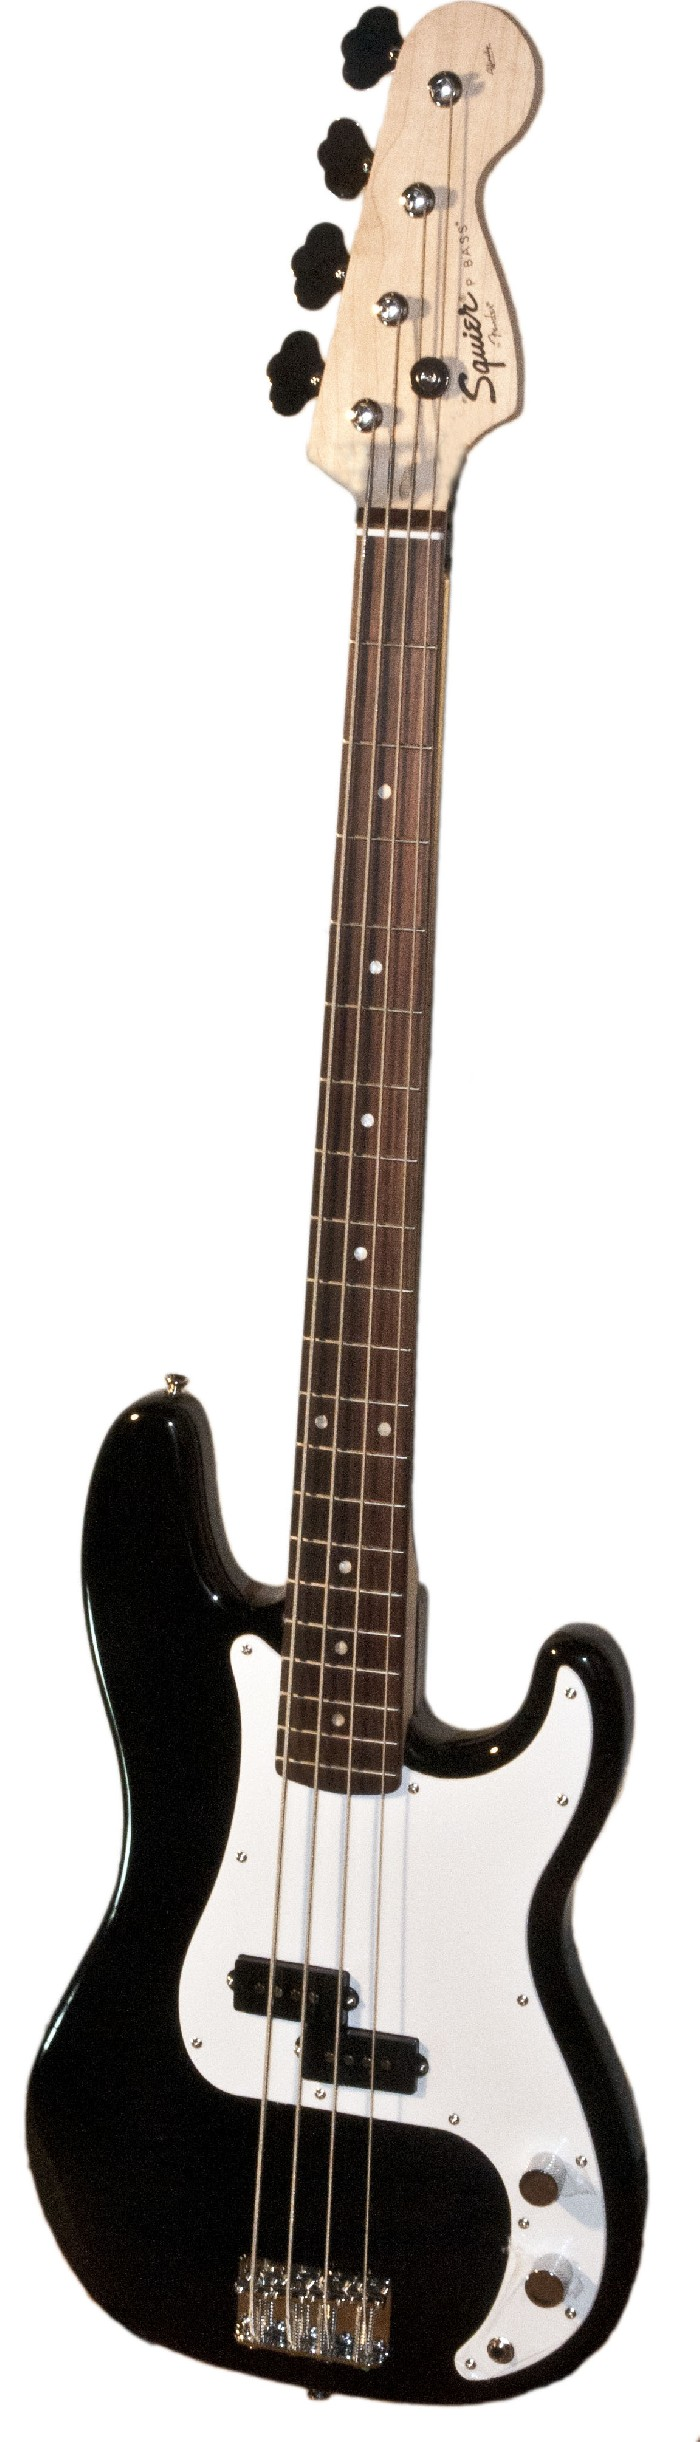 basse lectrique fender squier affinity p bass vendre. Black Bedroom Furniture Sets. Home Design Ideas